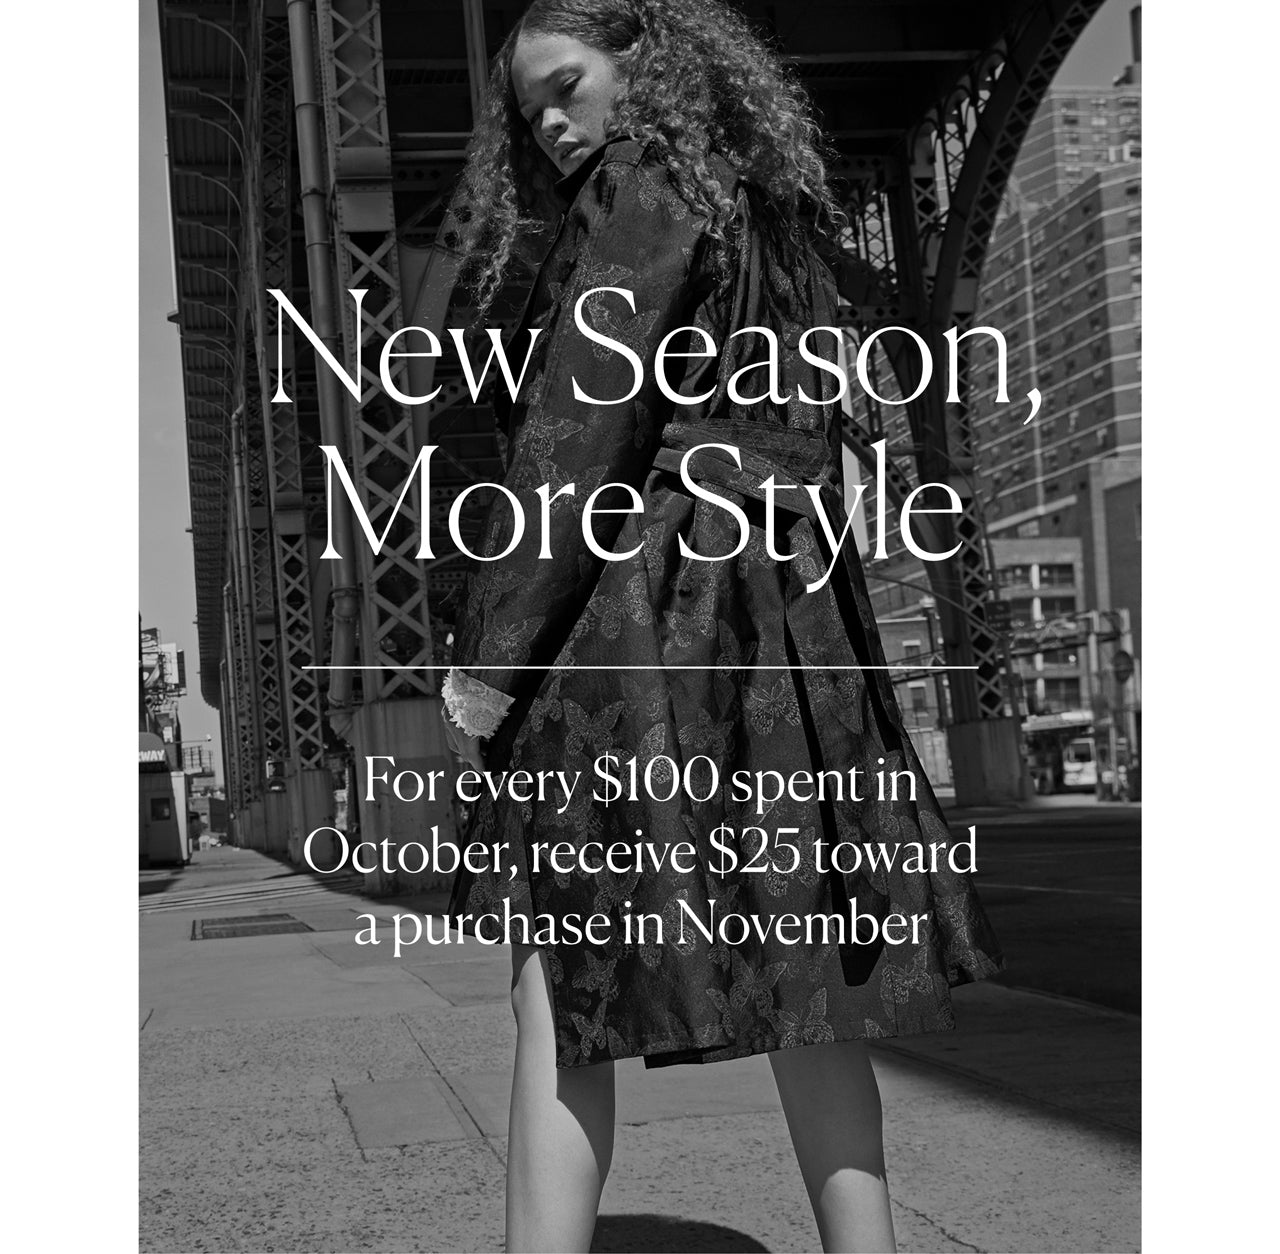 New Season, More Style: For every $100 spent in October, receive $25 toward a purchase in November